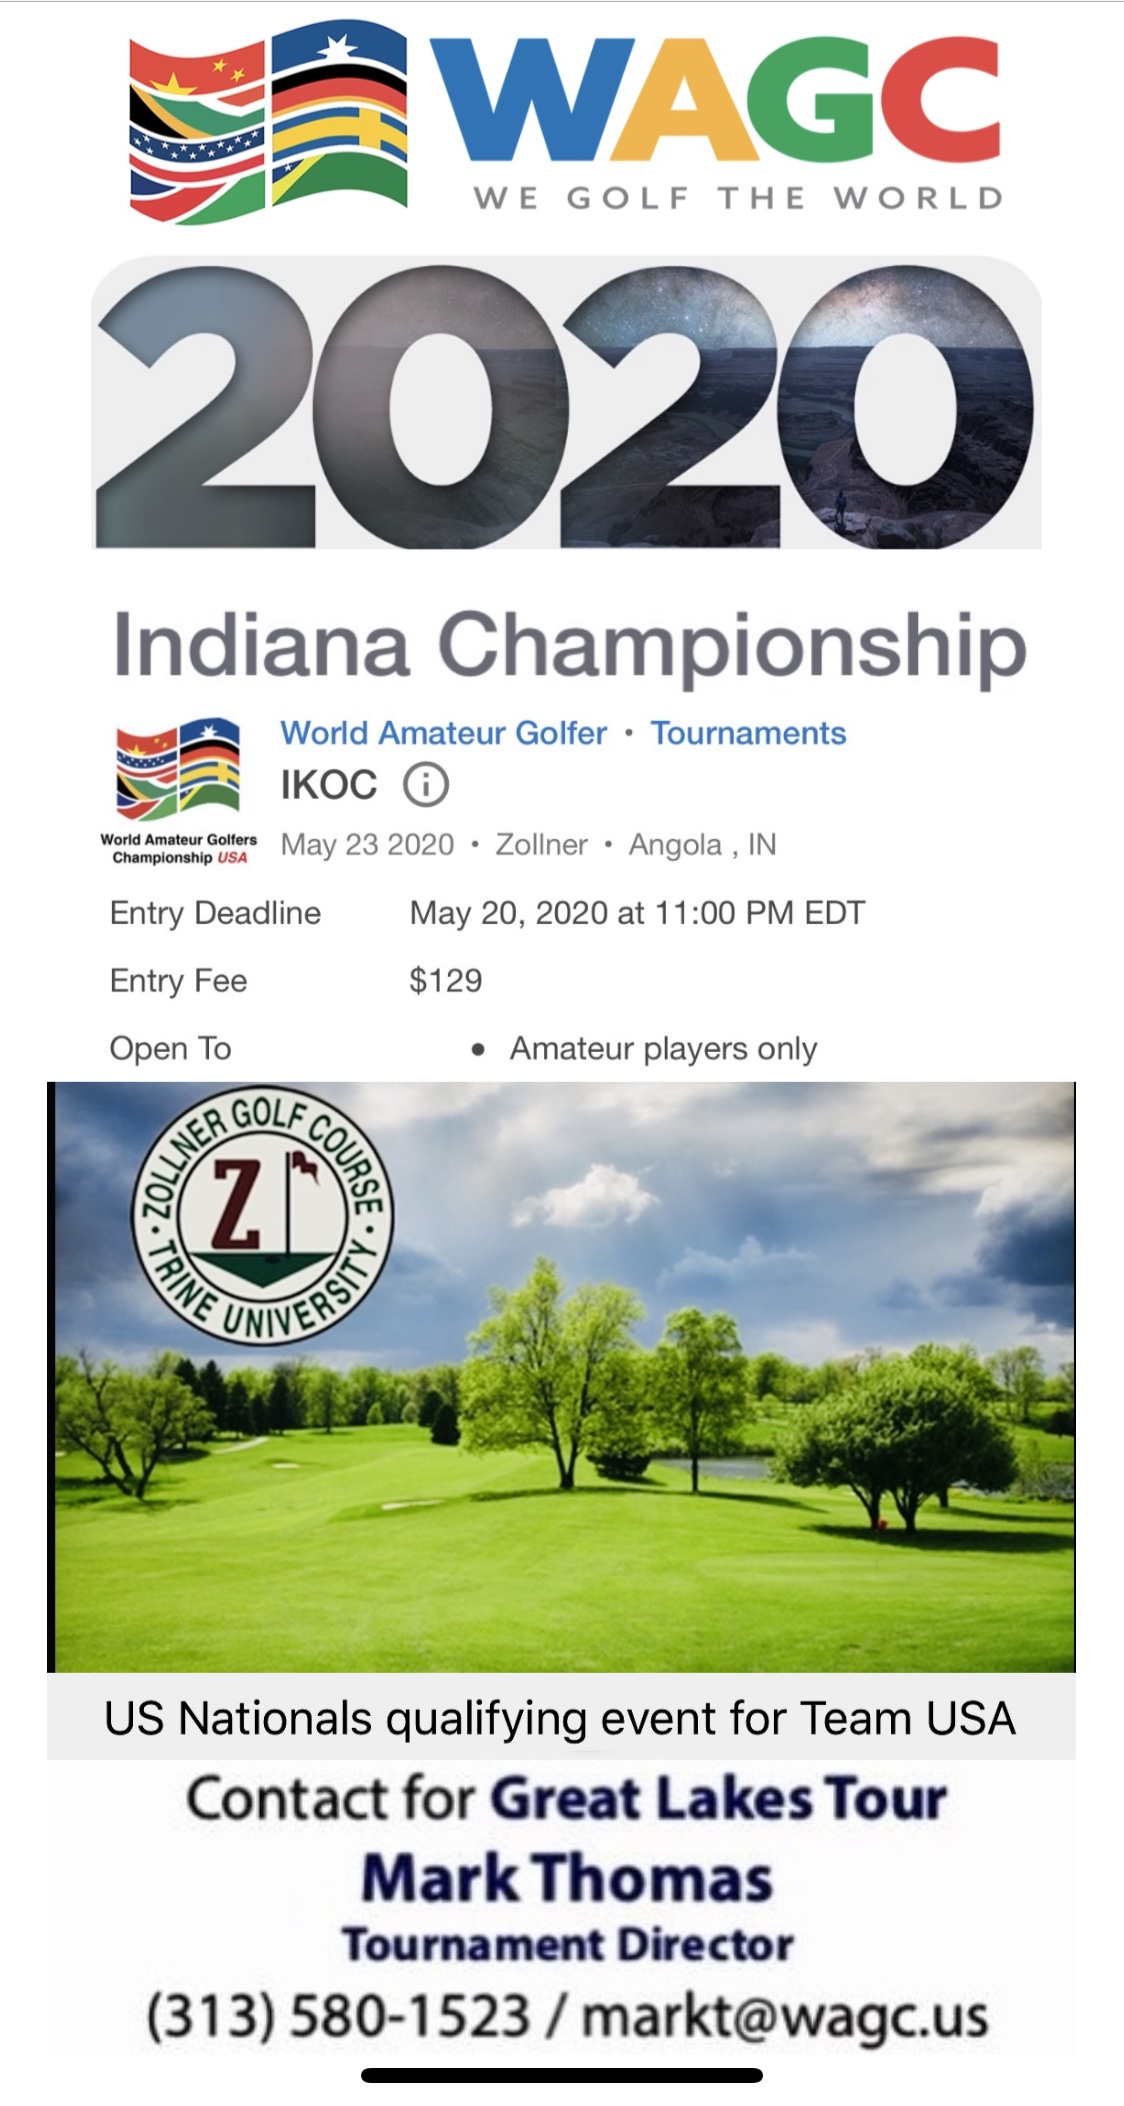 2020 World Amateur Golfer 2020 Indiana Championship